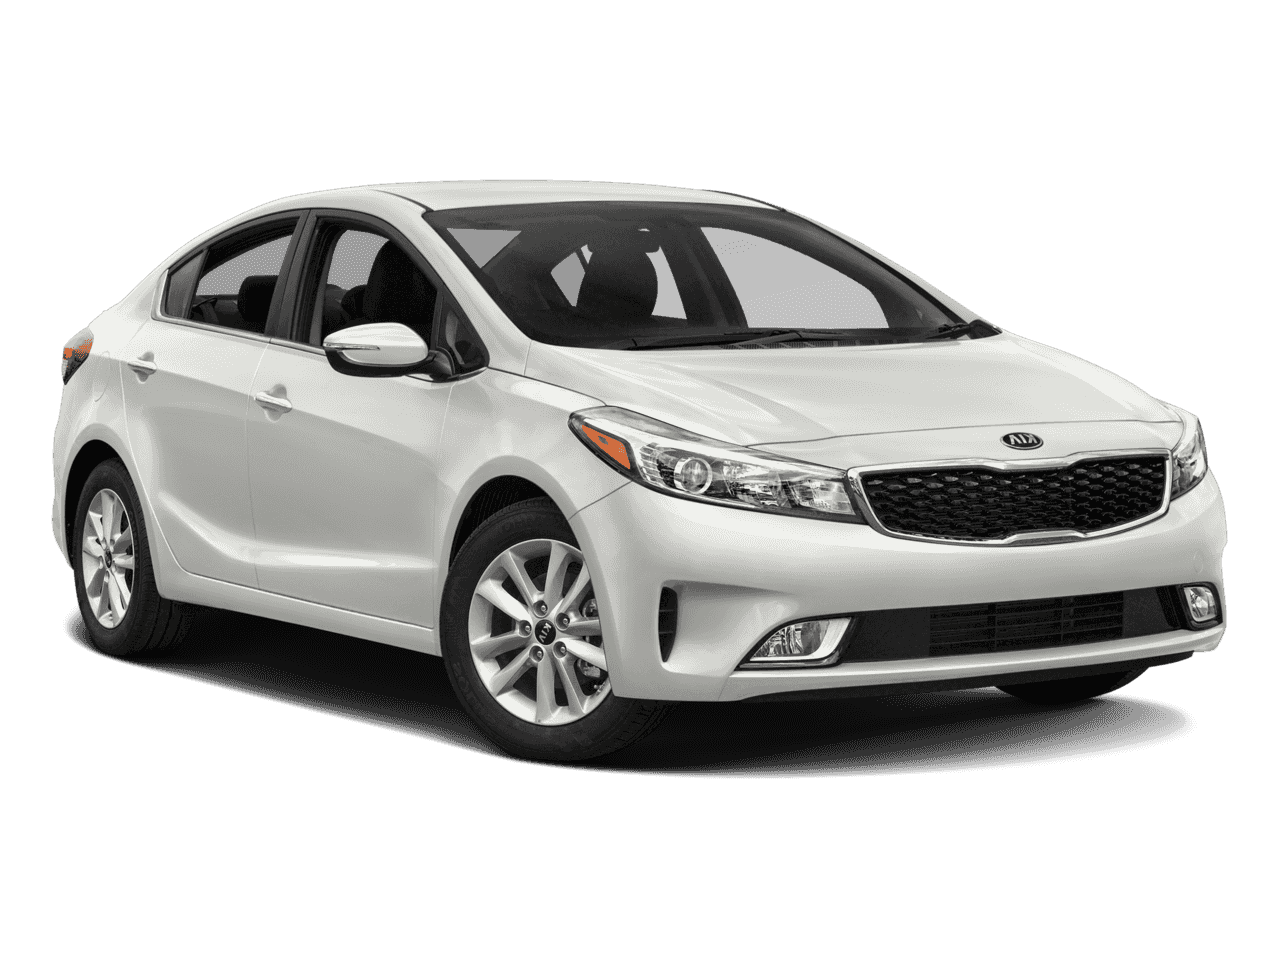 New KIA Cars, SUVs & Hatchbacks for Sale in San Jose, CA.